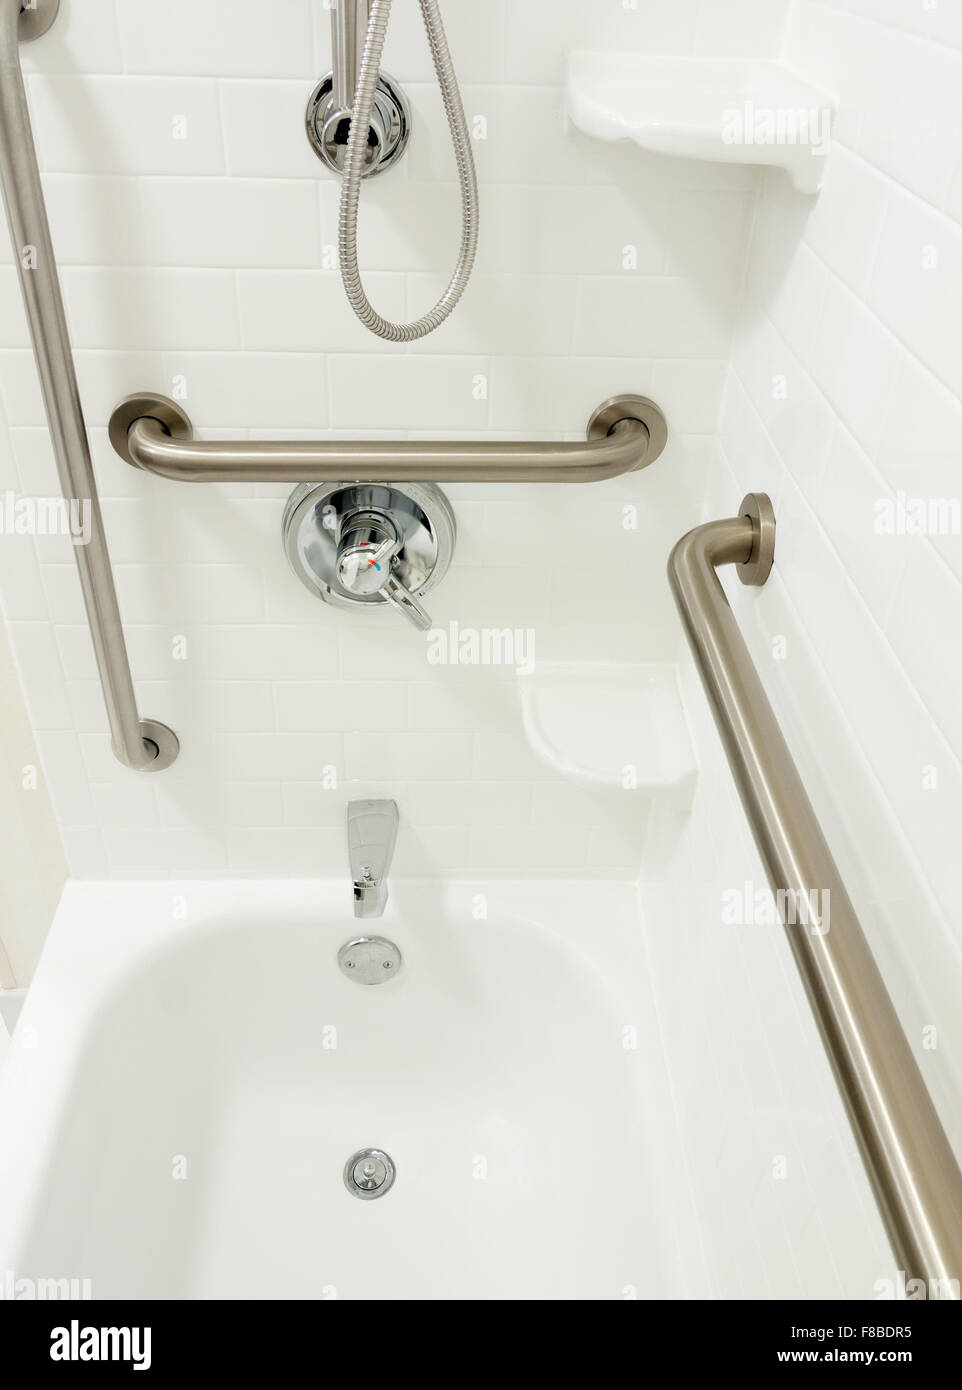 Disabled handicapped shower bathtub with grab bars Stock Photo ...